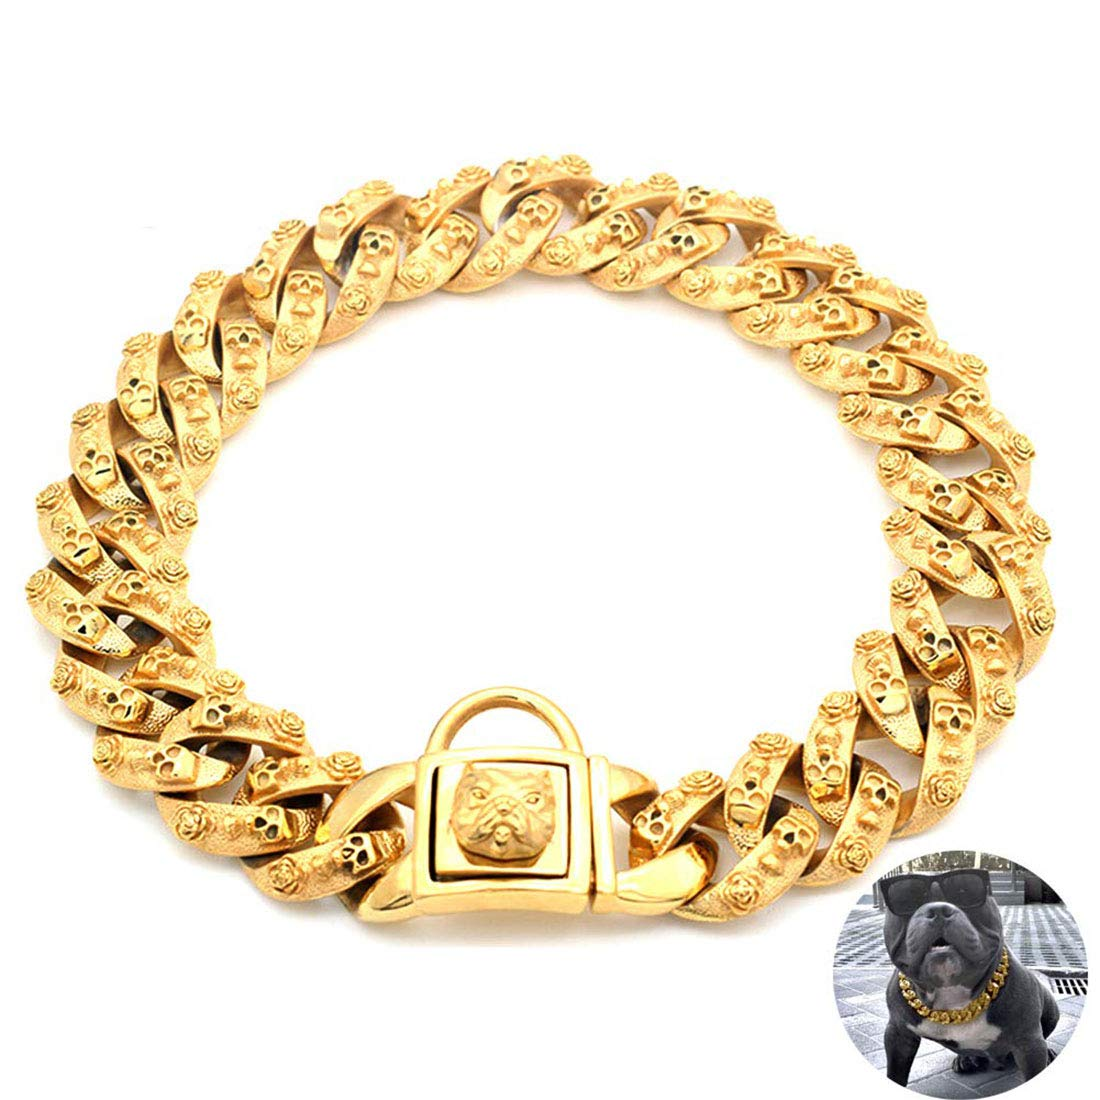 MYTMCW Gold Dog Chain Collar, Stainless Steel Training Collar, Heavy Duty Cuban Link Gold Plated Large Pet Dogs Necklace Choke for Bully Pitbull, Mastiff, Big Breeds,60cm